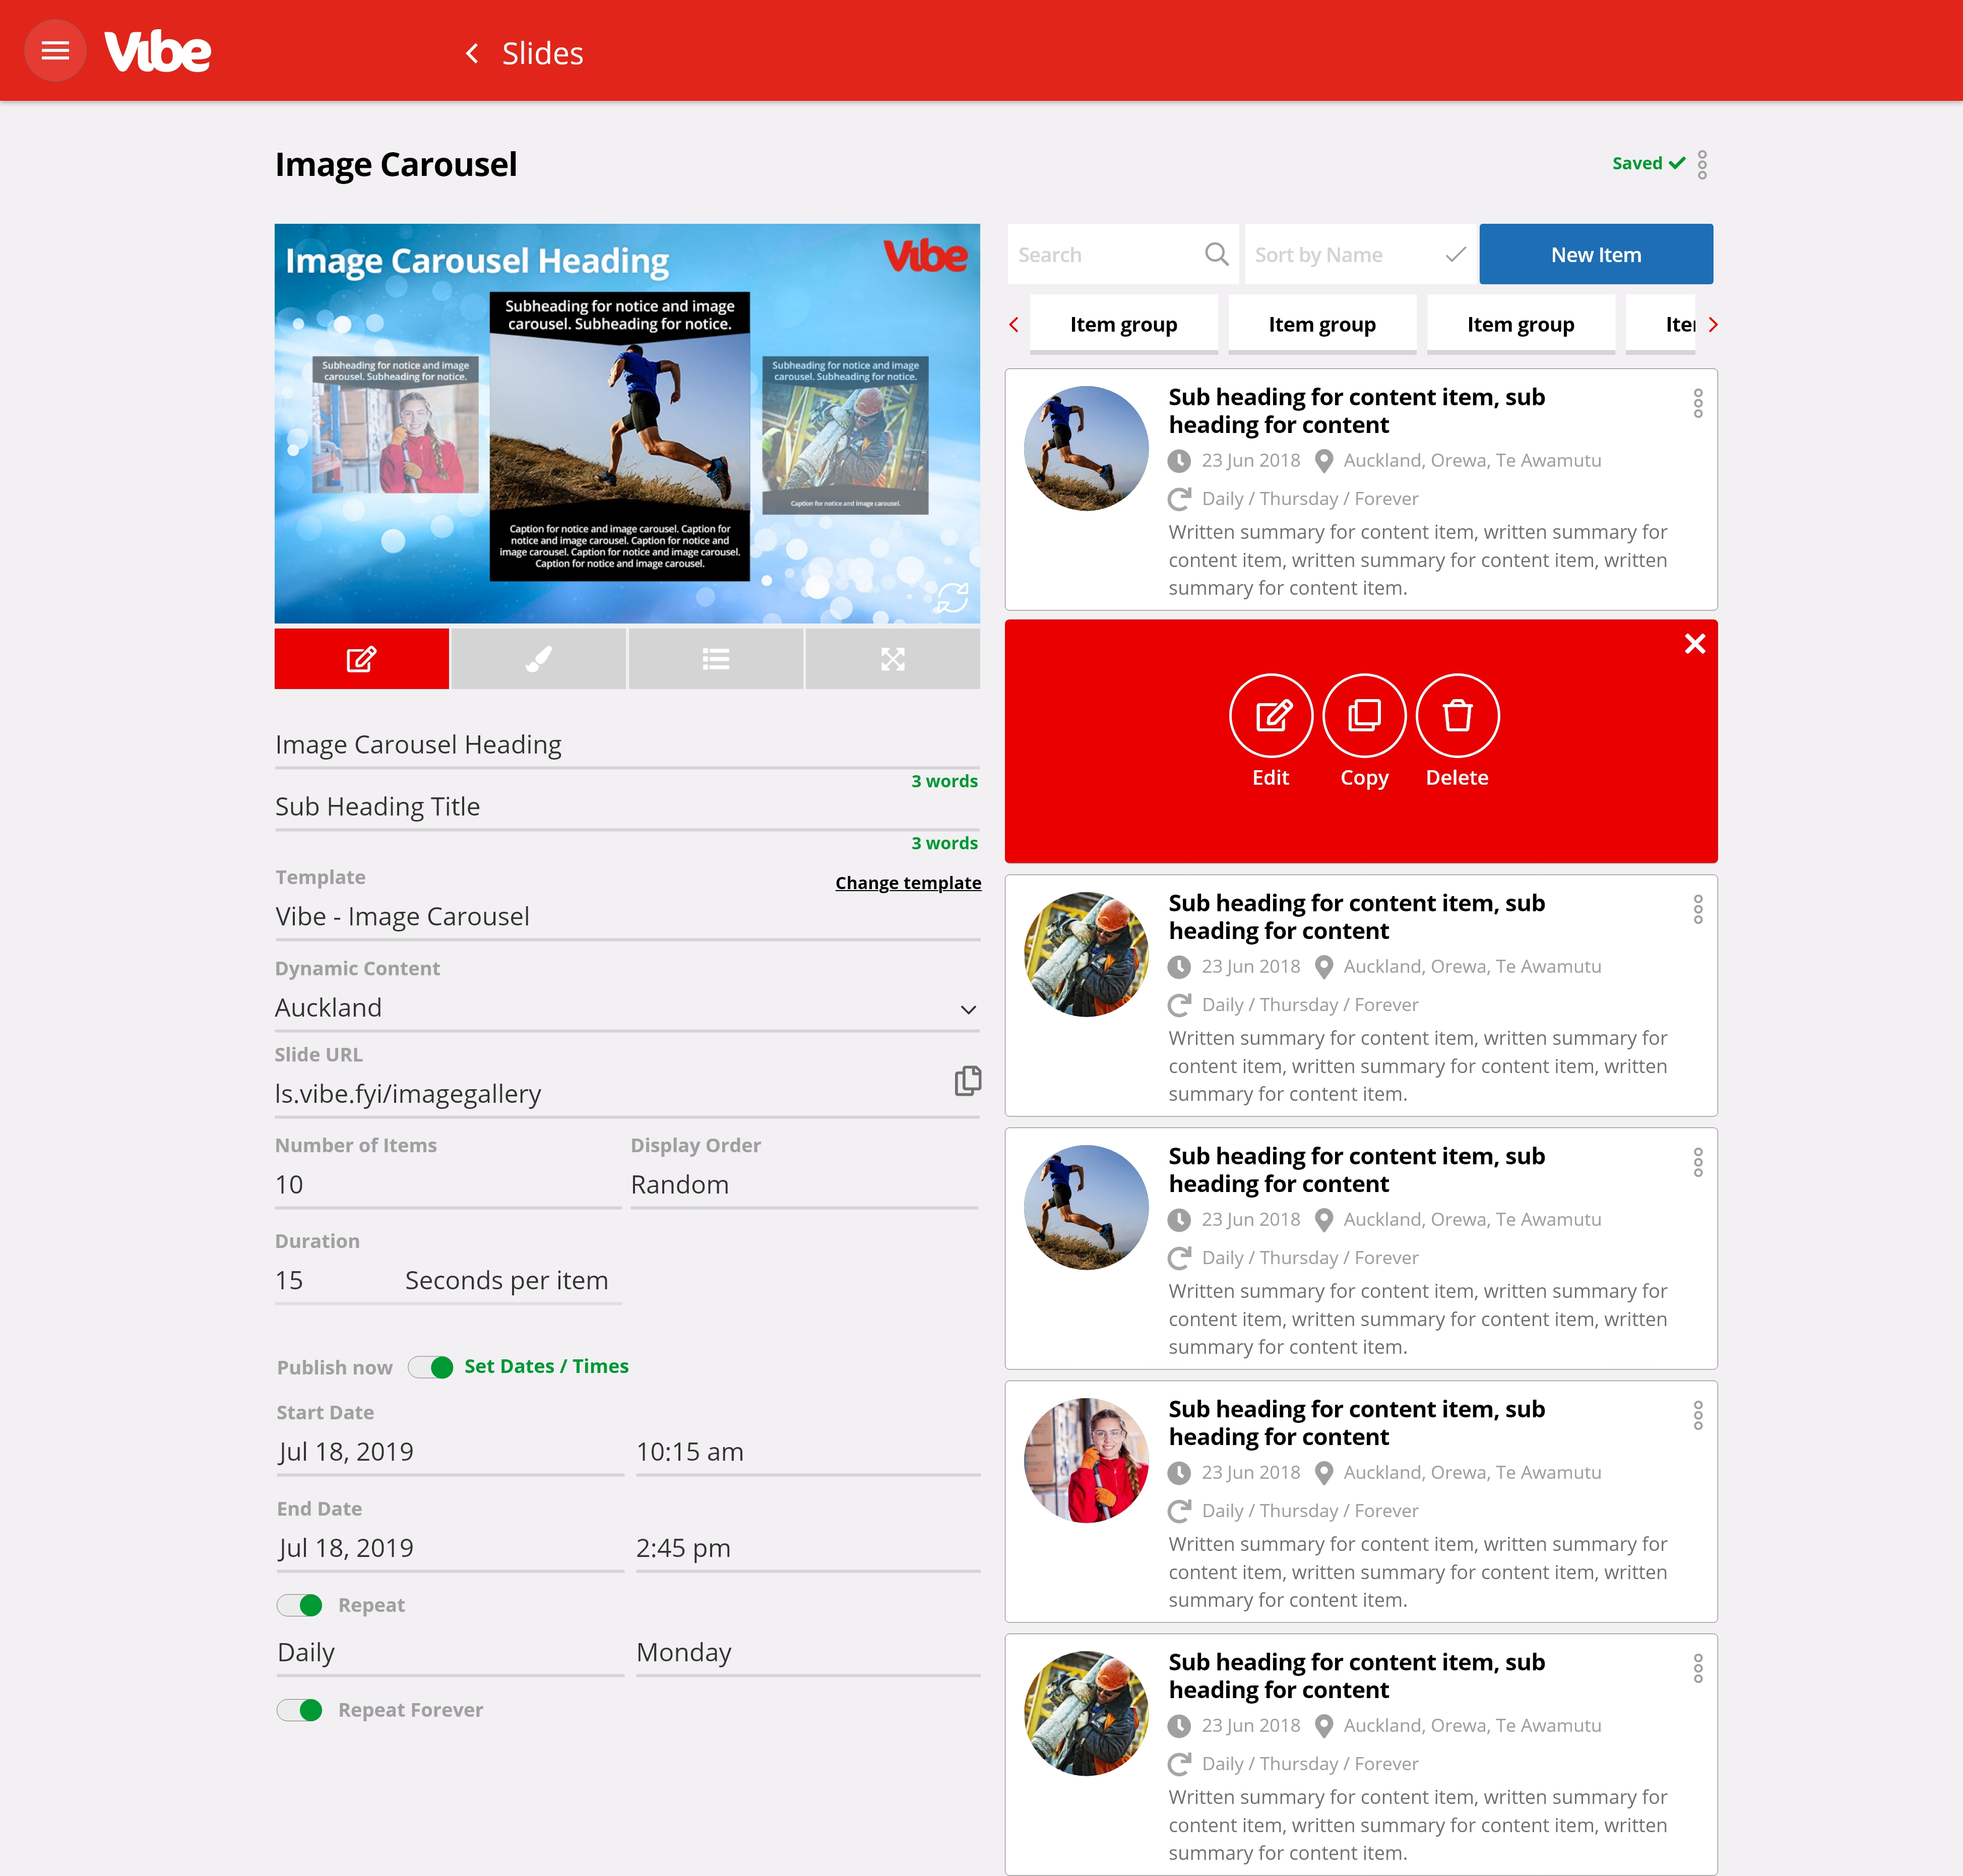 Vibe Slide Manager - design and make changes to your messaging at the click of a button.